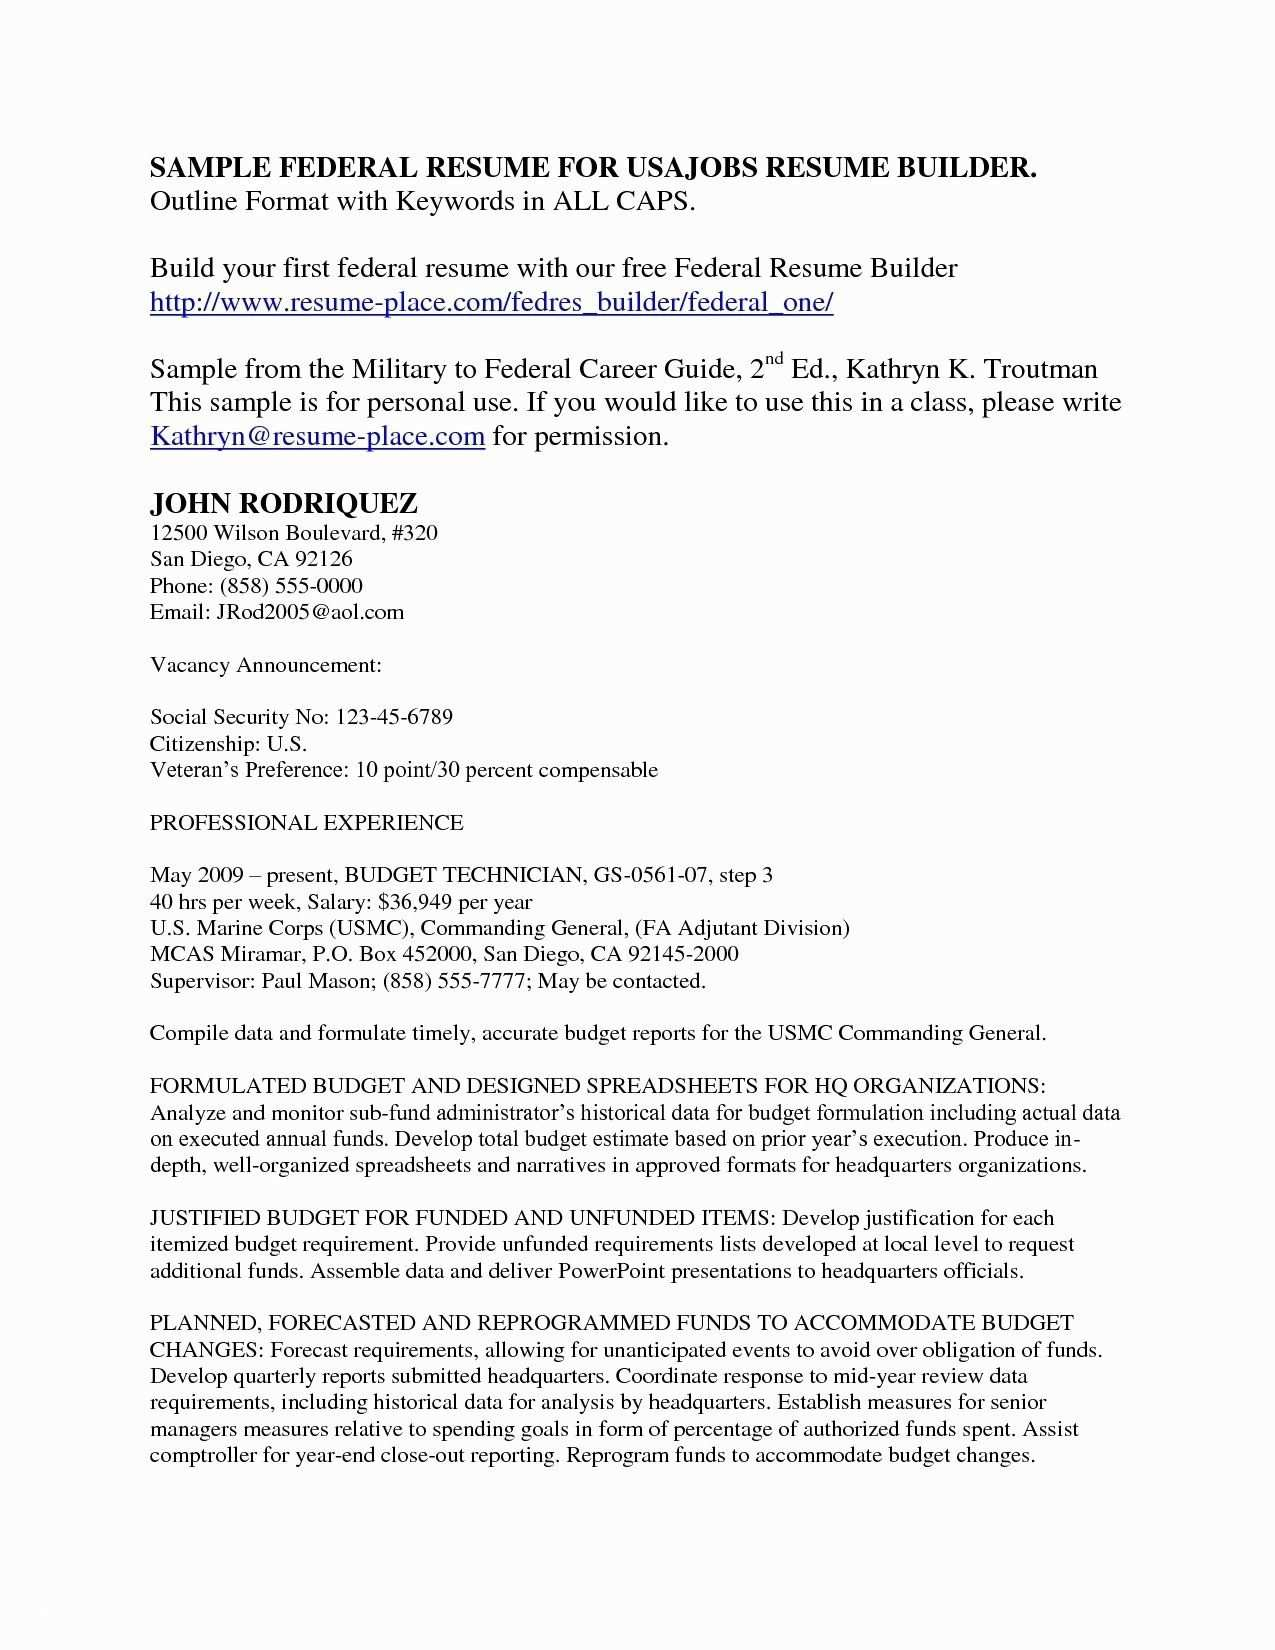 College Application Resume Template Free - √ Resume Federal Jobs Best Awesome Sample College Application